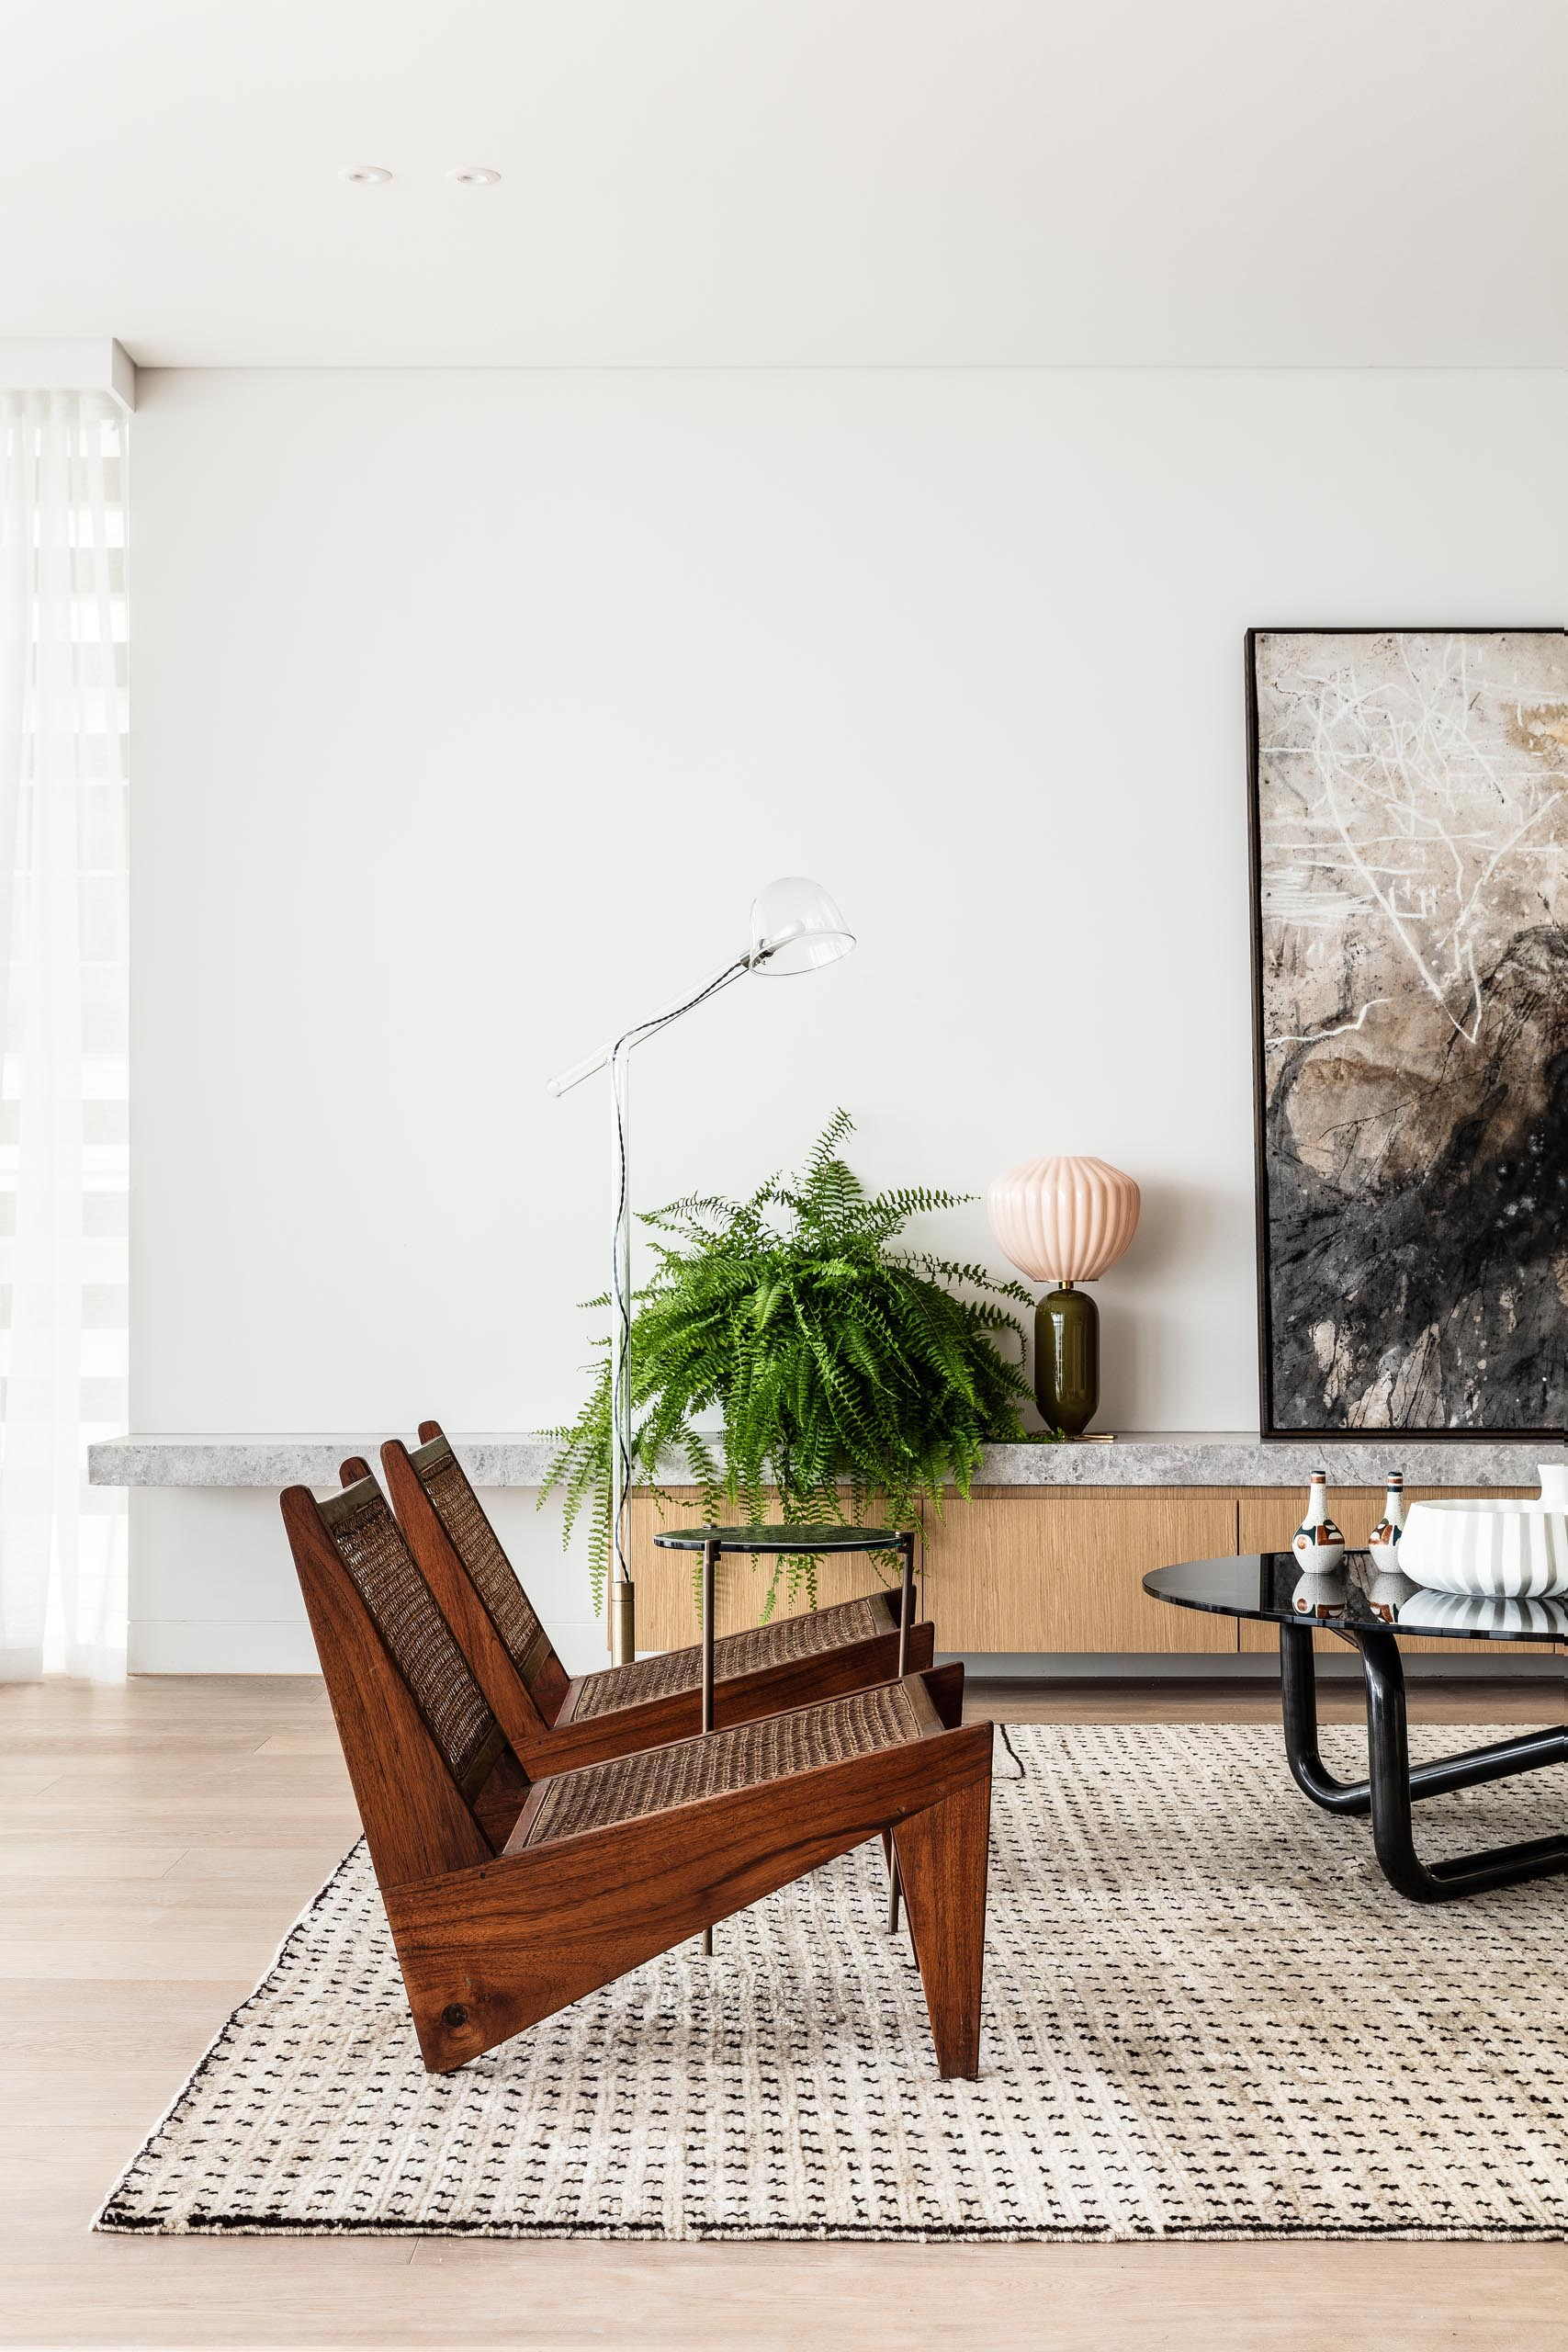 A large rug anchors this living room, while a low cabinet provides a place to display artwork, plants, and decor.